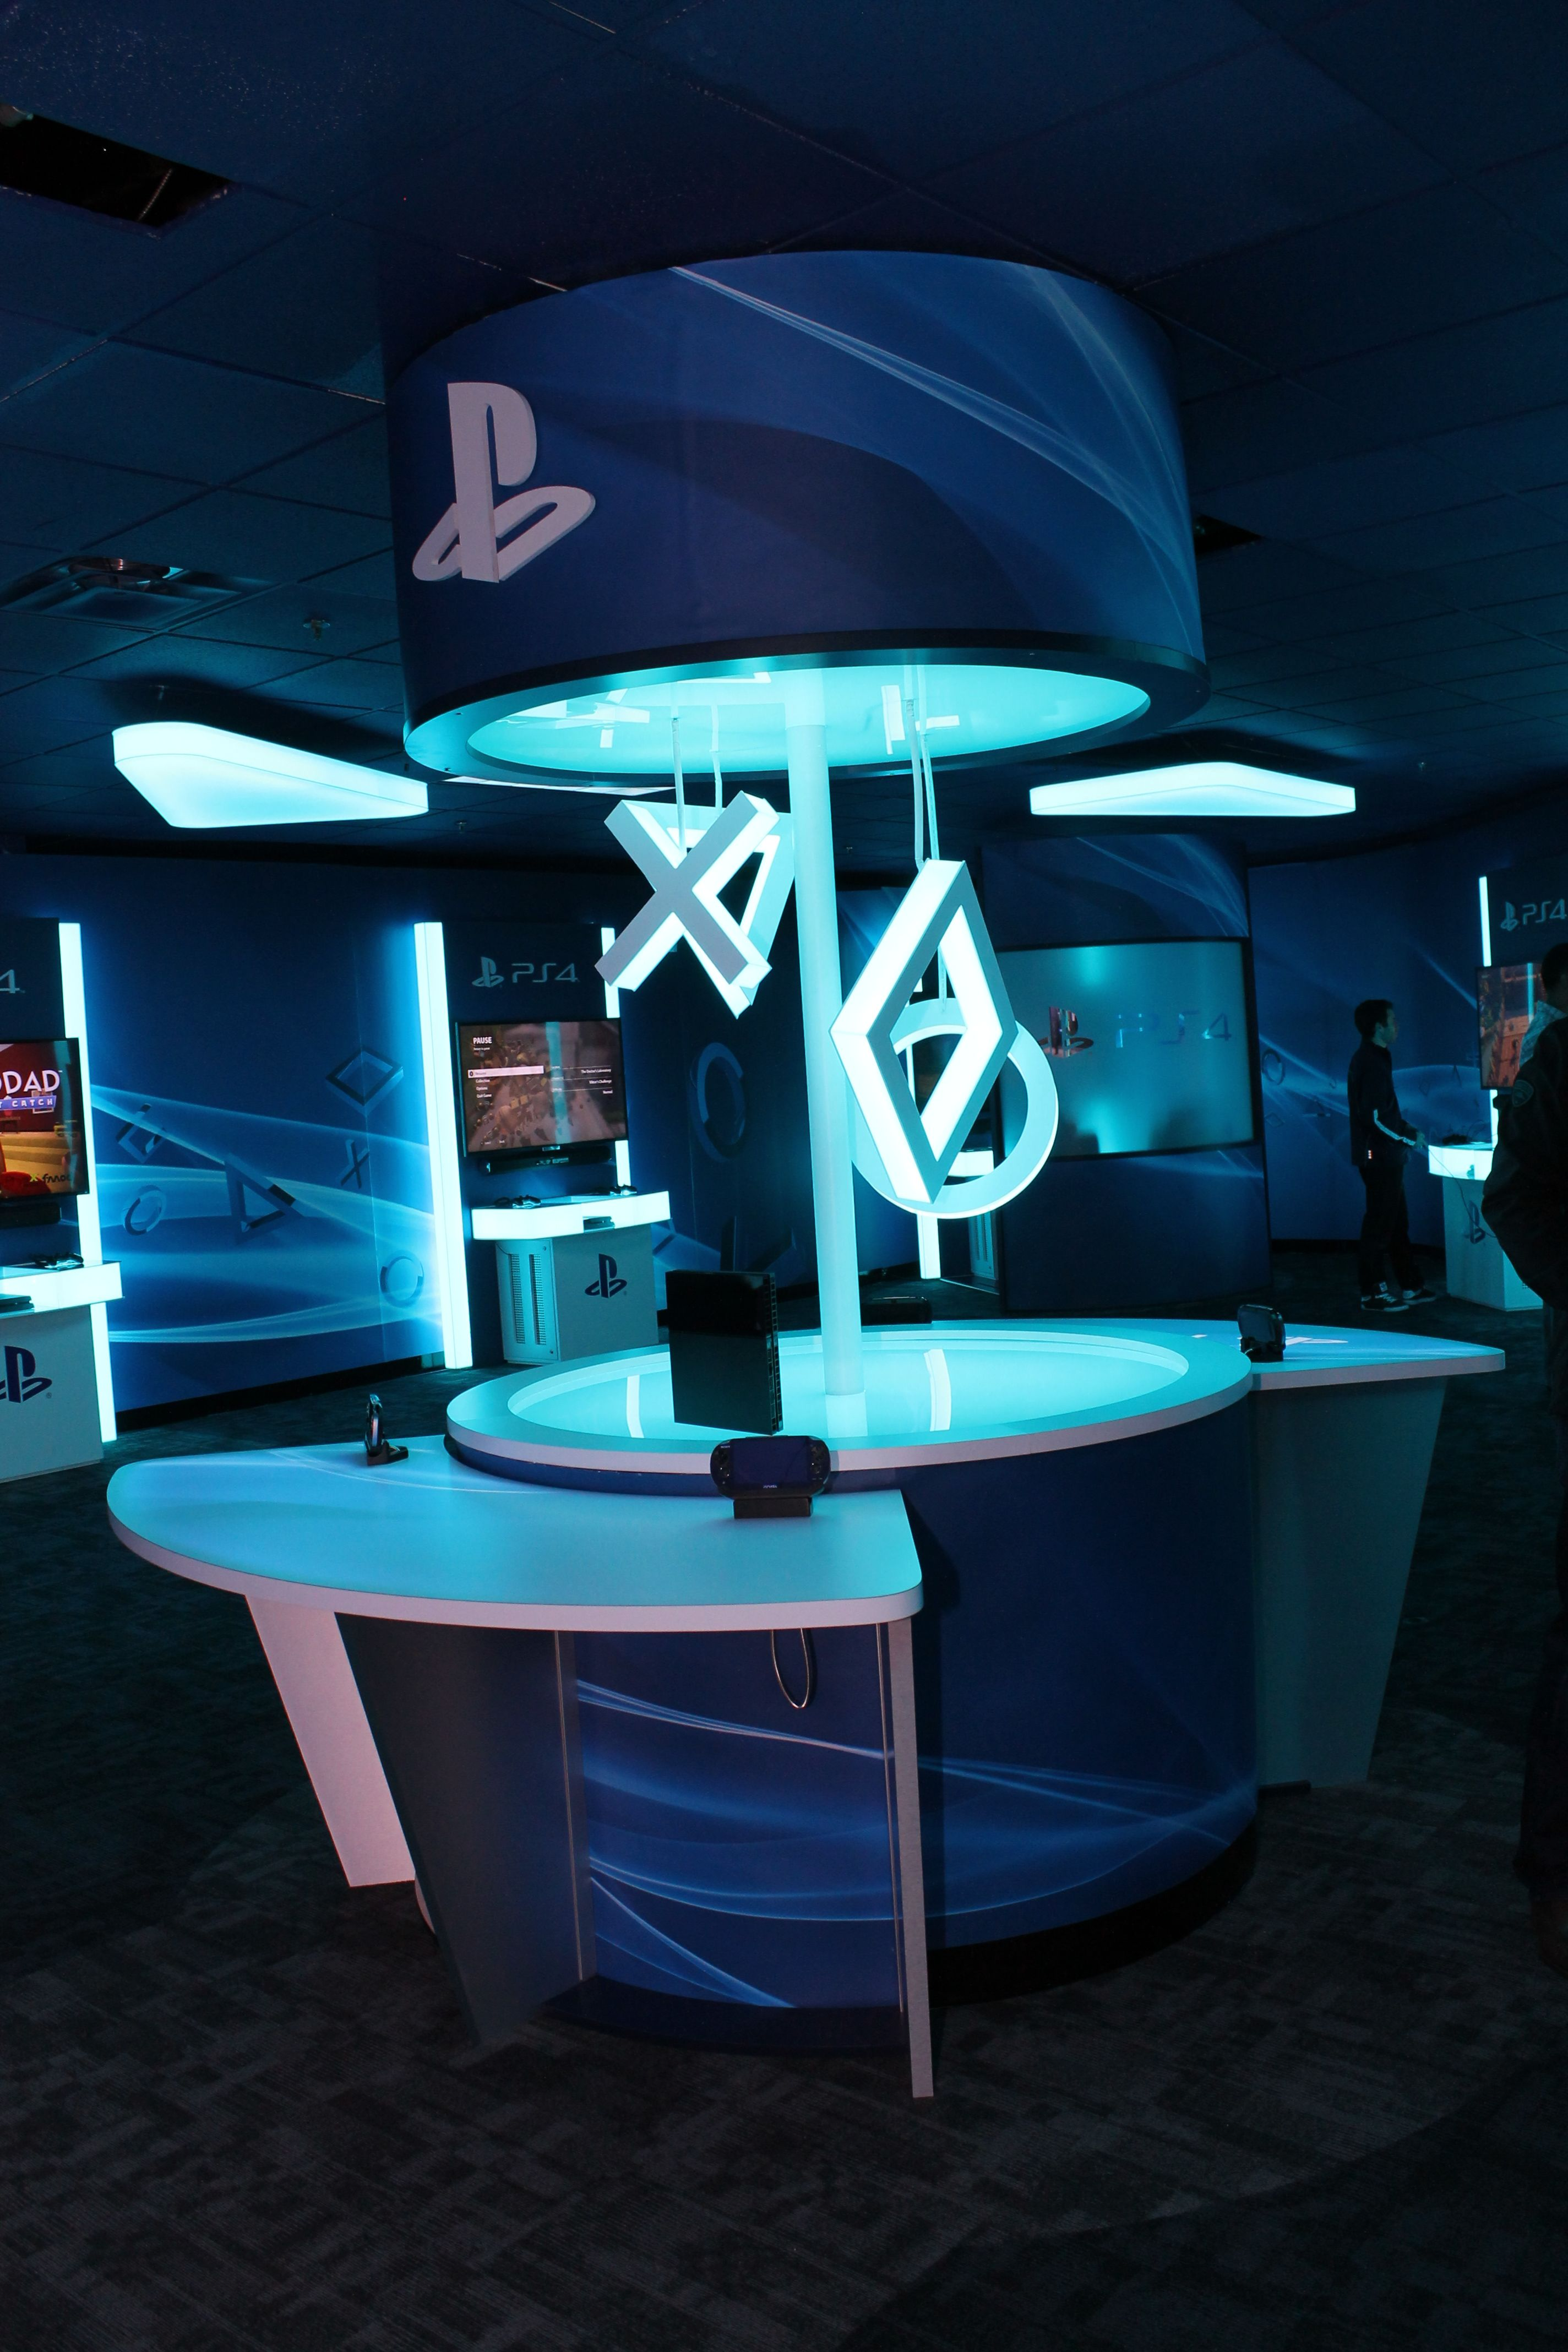 Focal Point Of The Ps4 Store Is The Hero Station With Edge Lit Hanging Symbols Game Cafe Exhibition Booth Design Boutique Interior